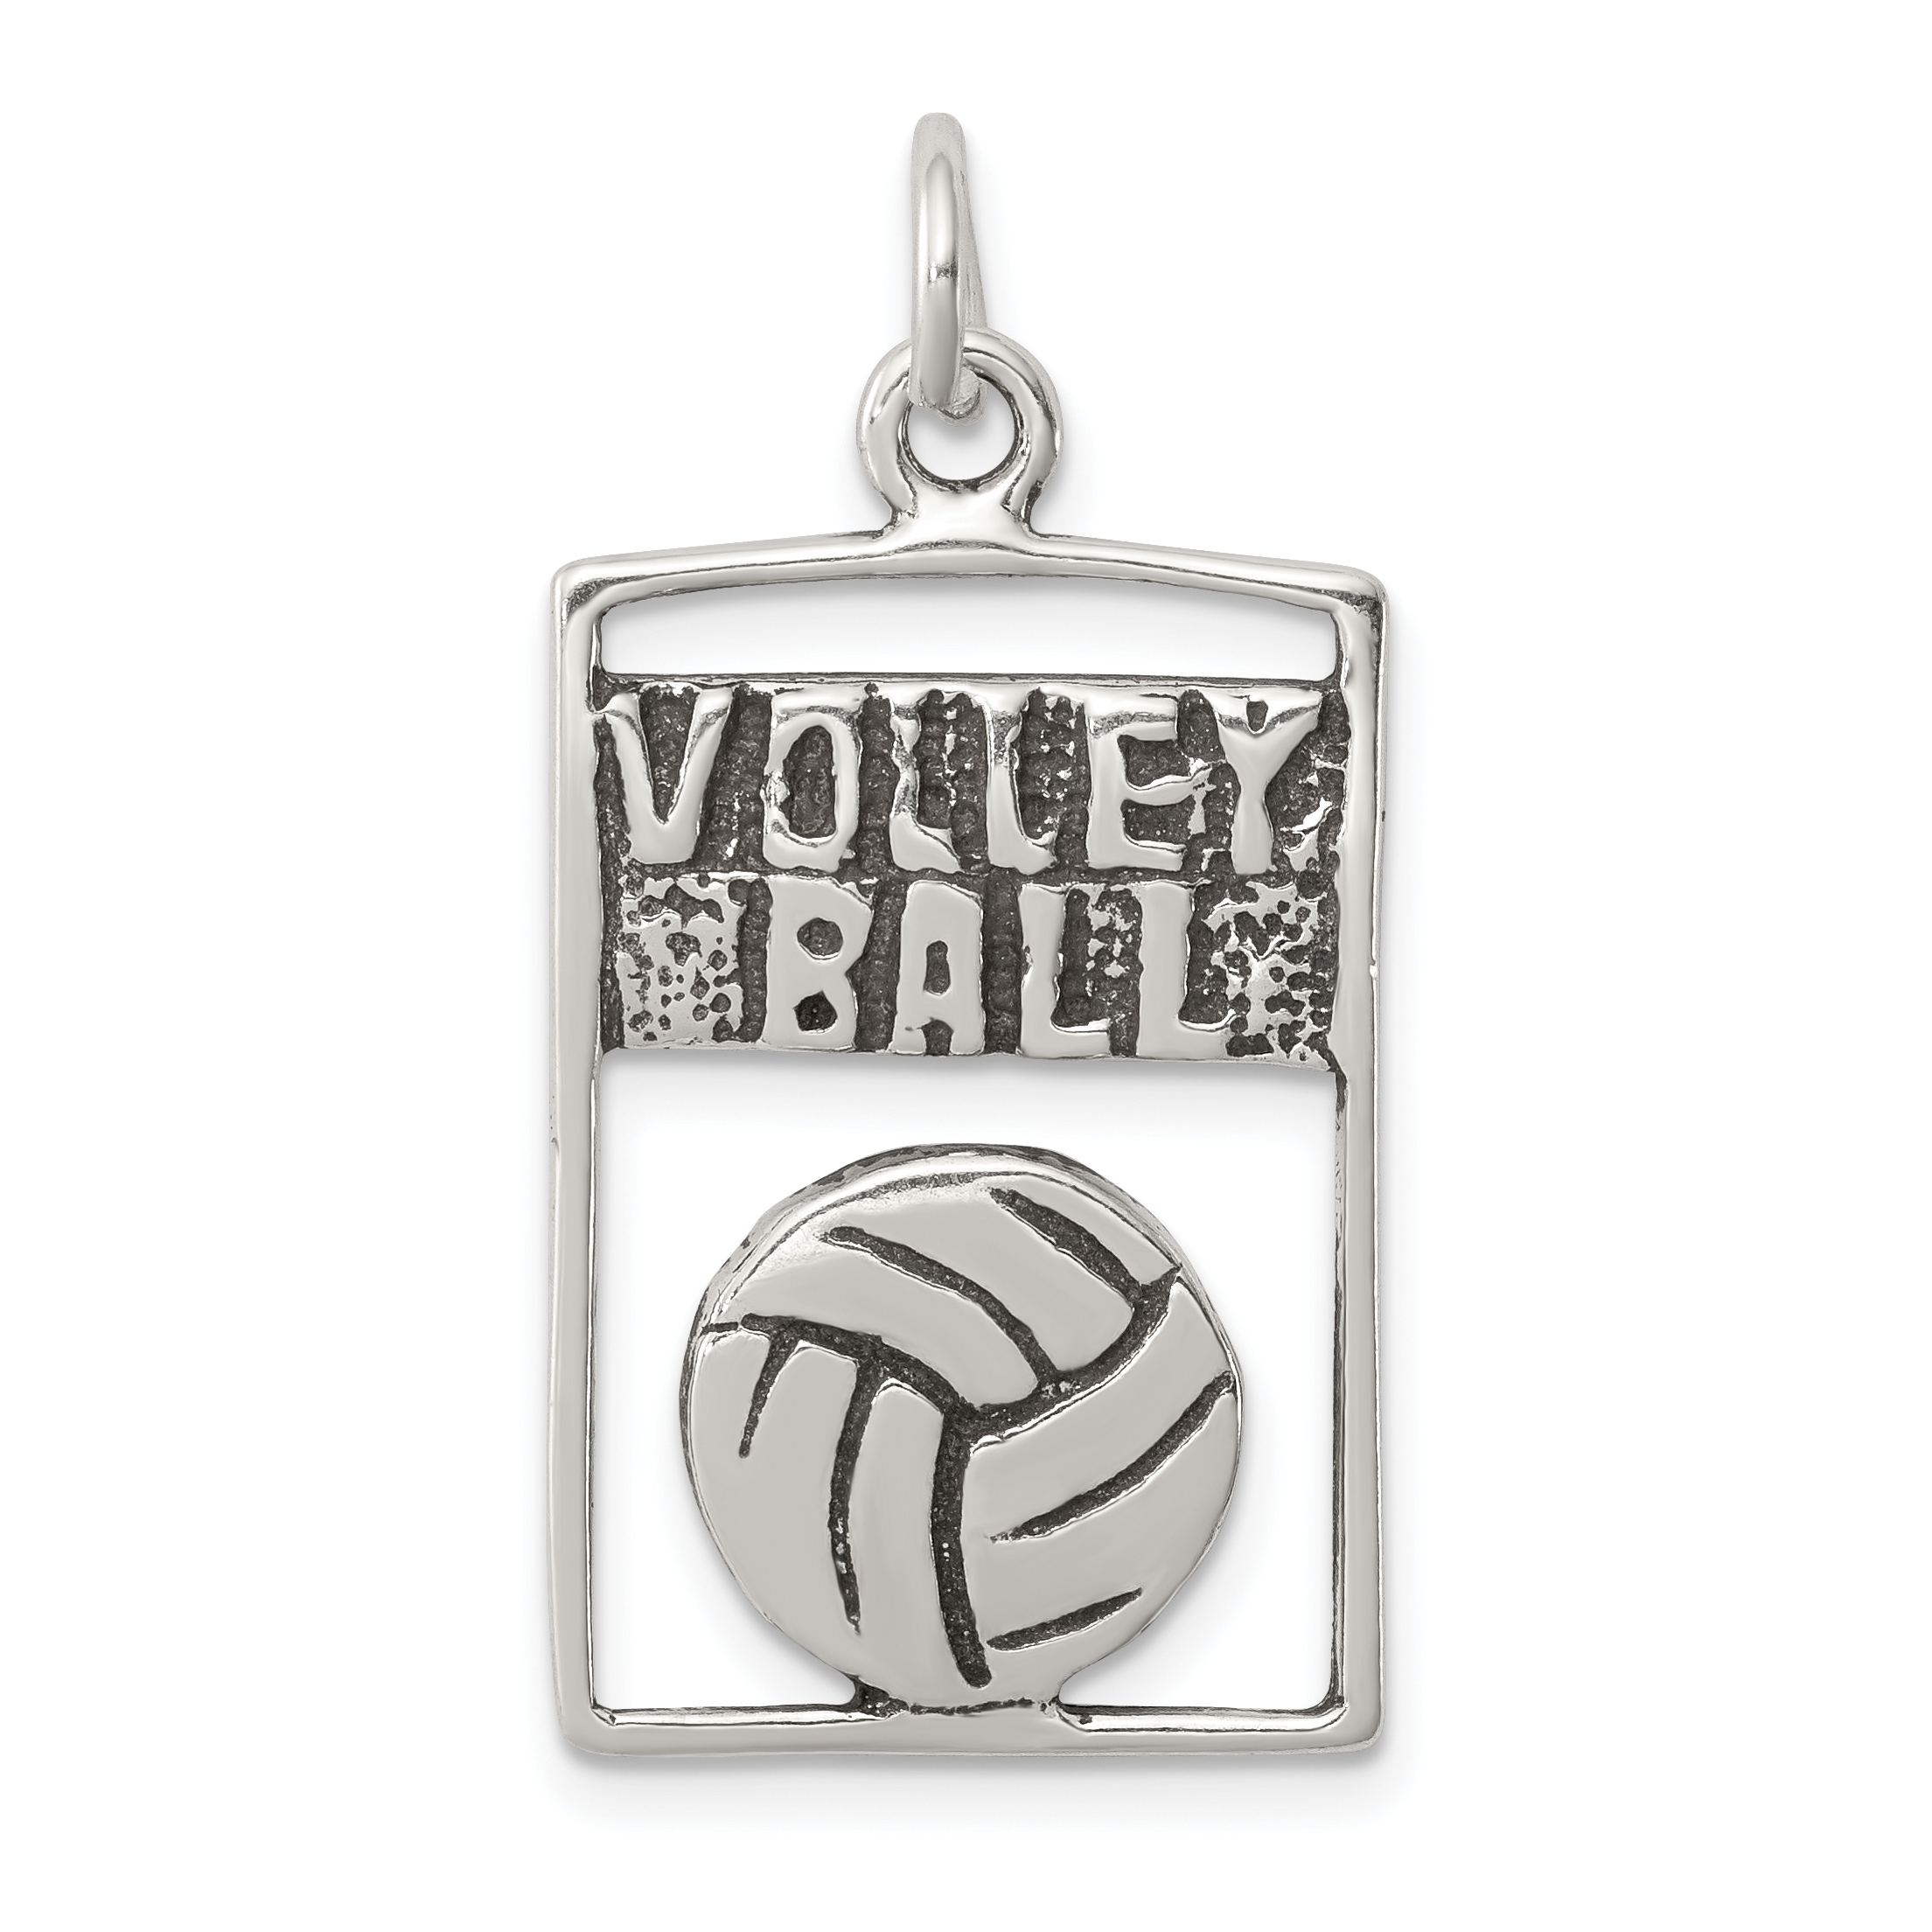 17mm Silver Yellow Plated 3-D Volleyball Charm